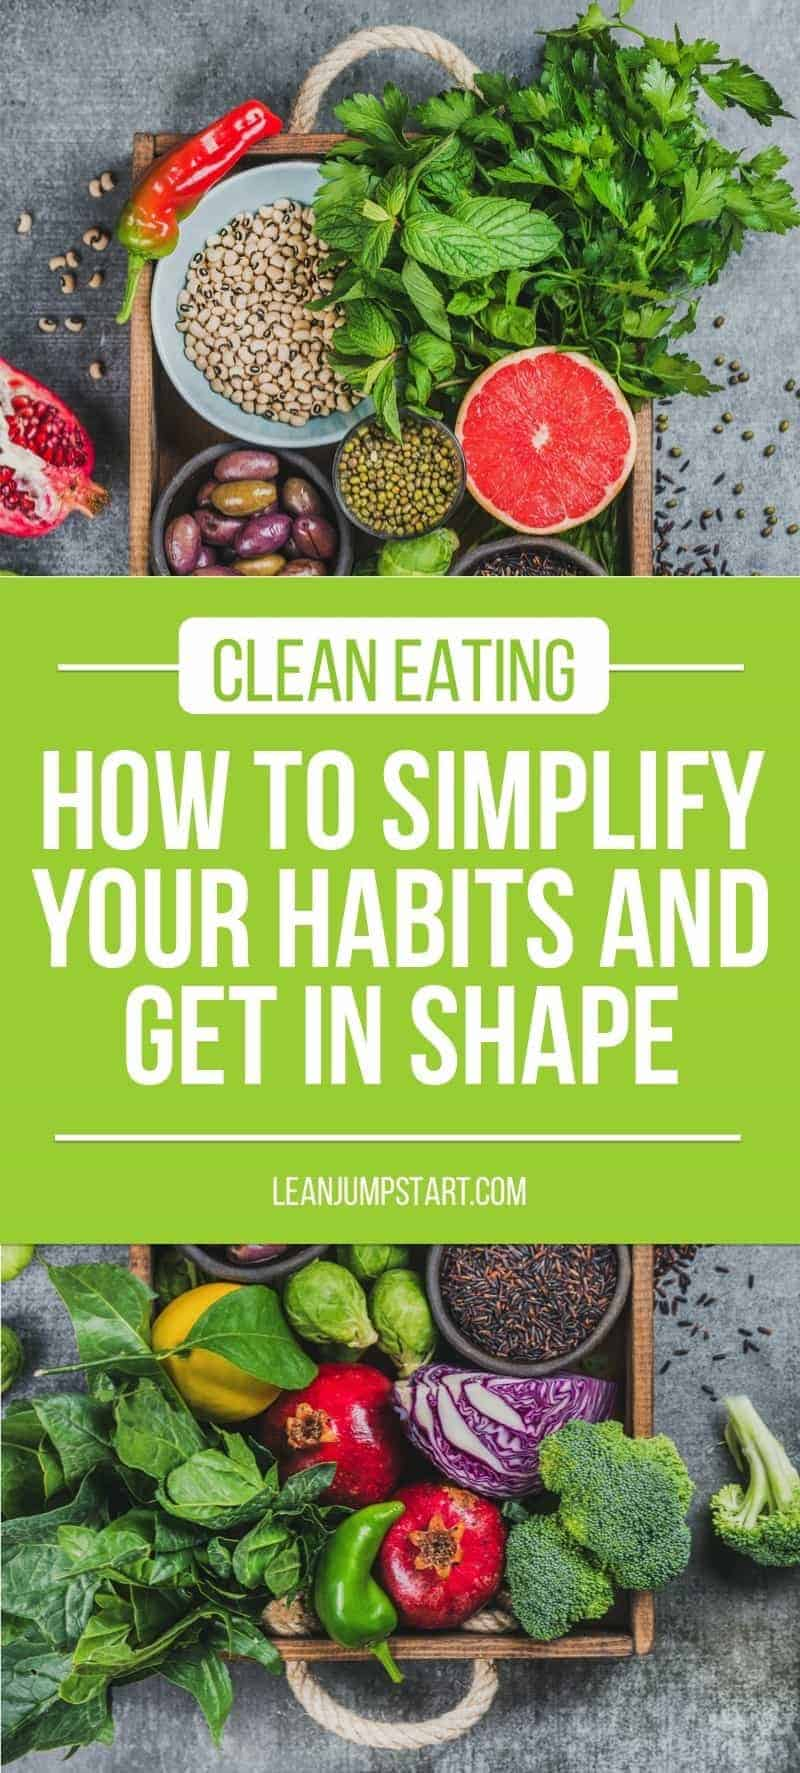 clean eating habits: how to simplify your habits and get in shape. Click through!